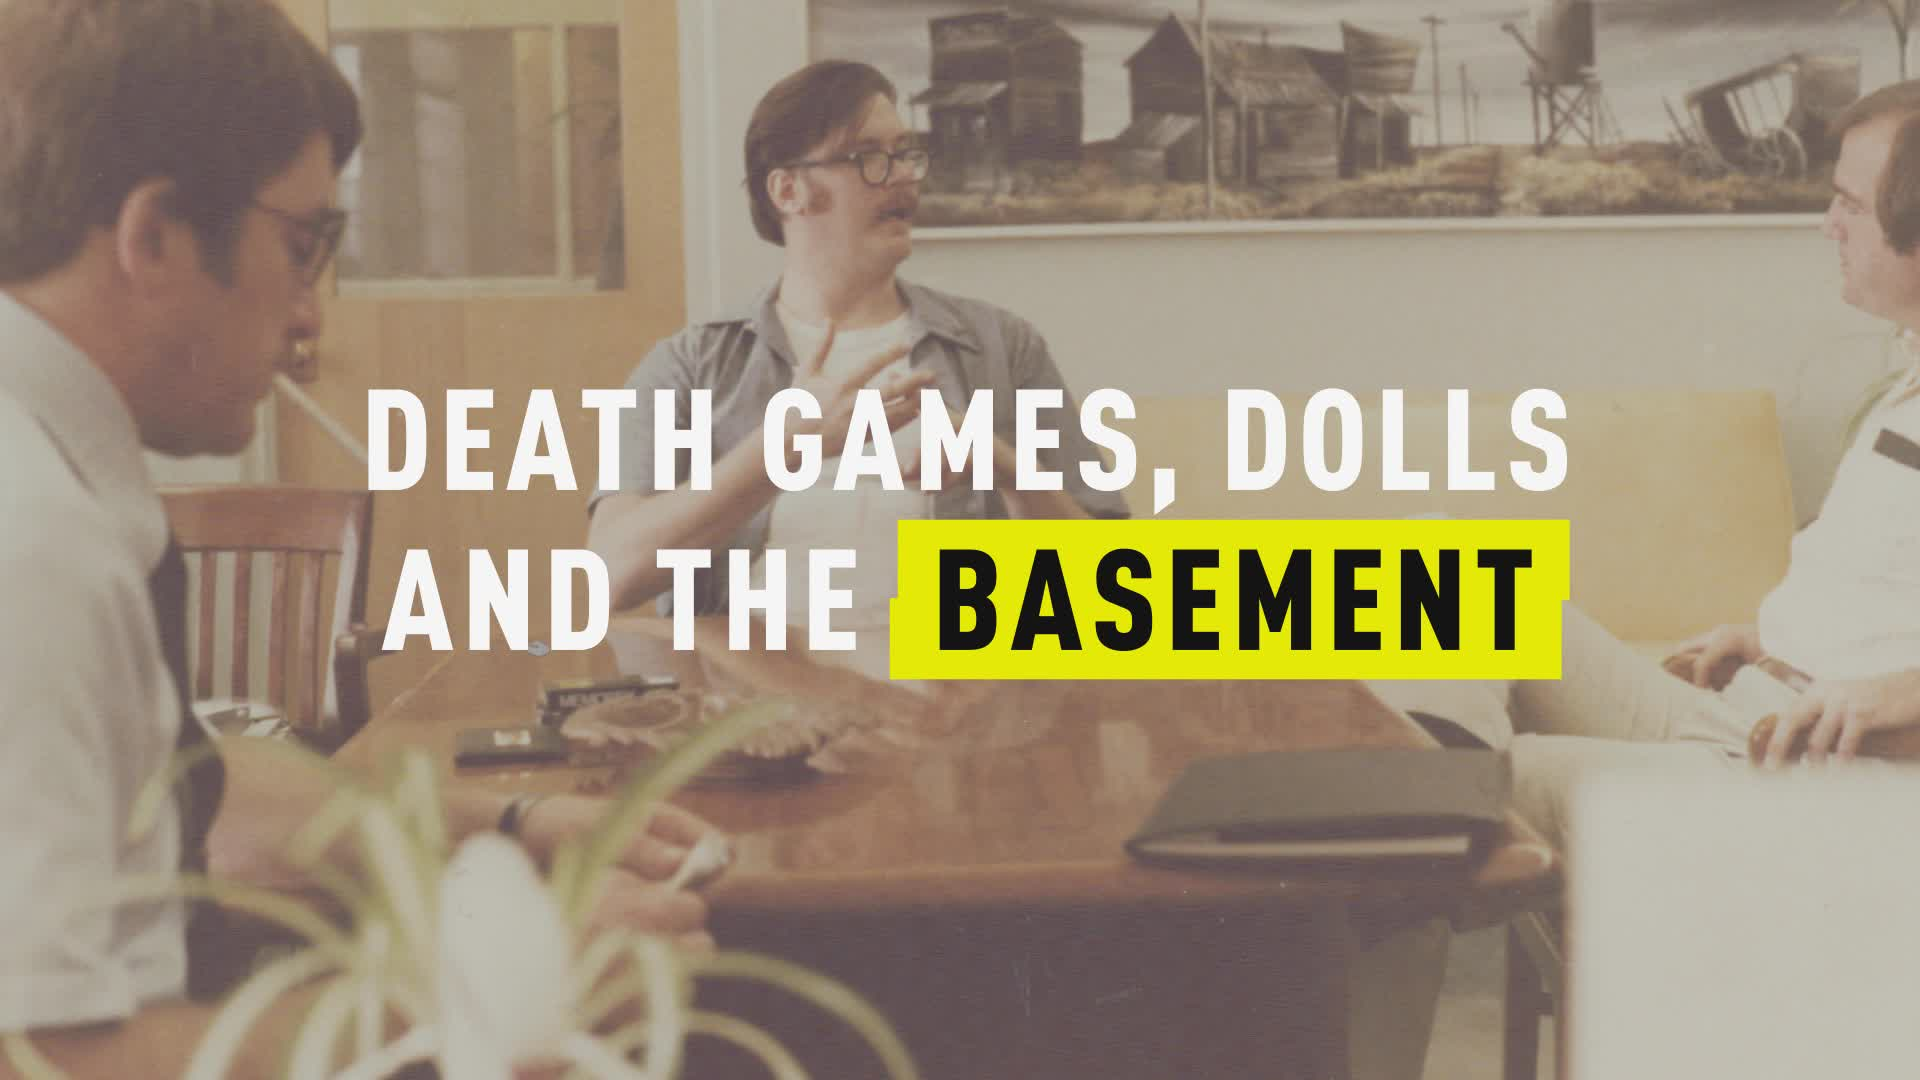 Kemper on Kemper: Death Games, Dolls and the Basement